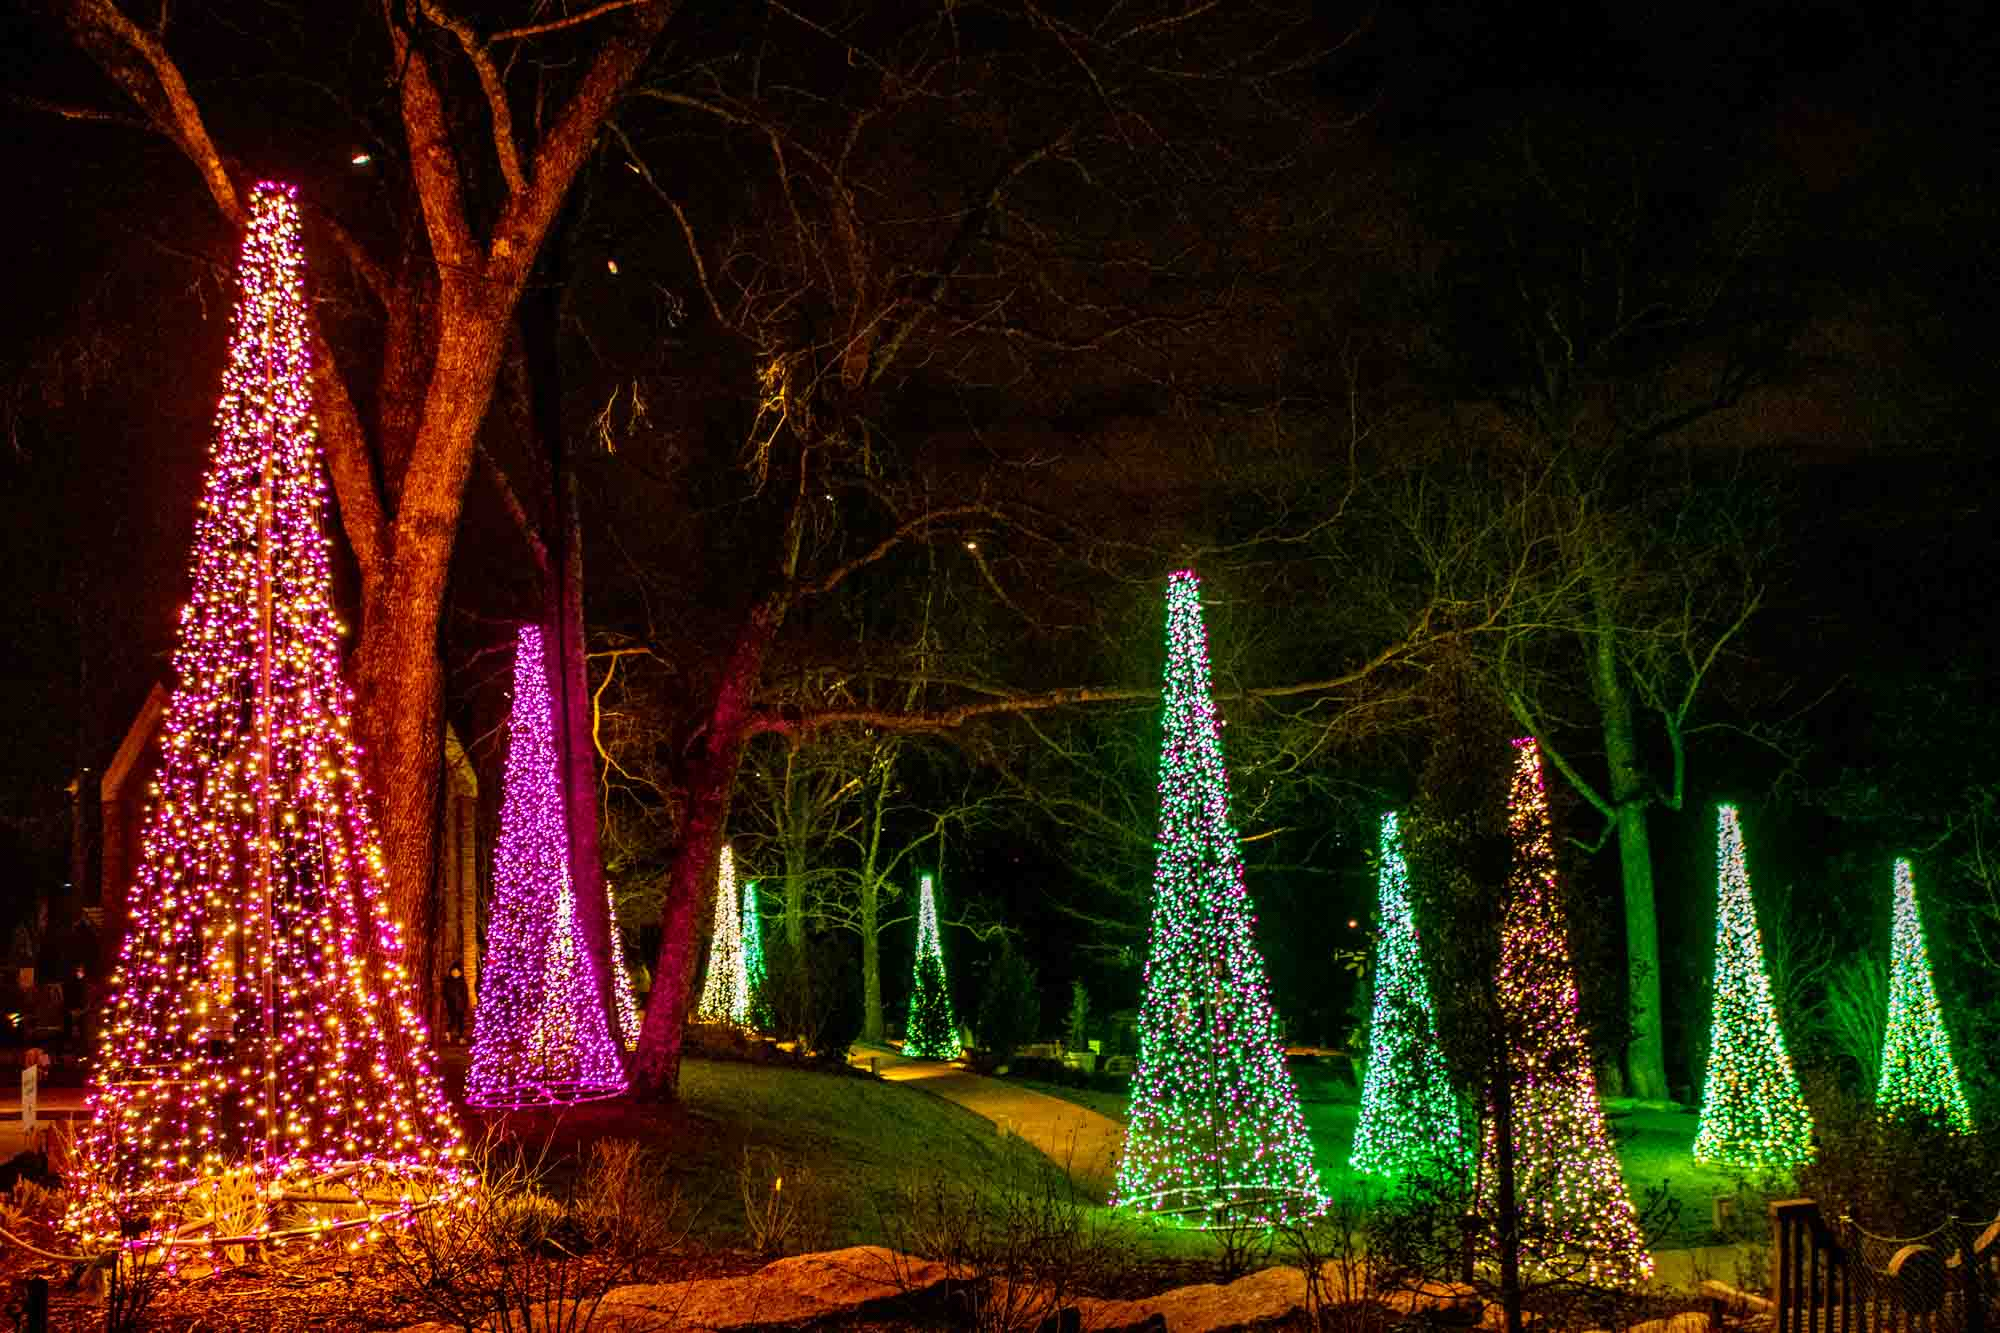 Green, pink, and white lights strung in the shape of Christmas trees